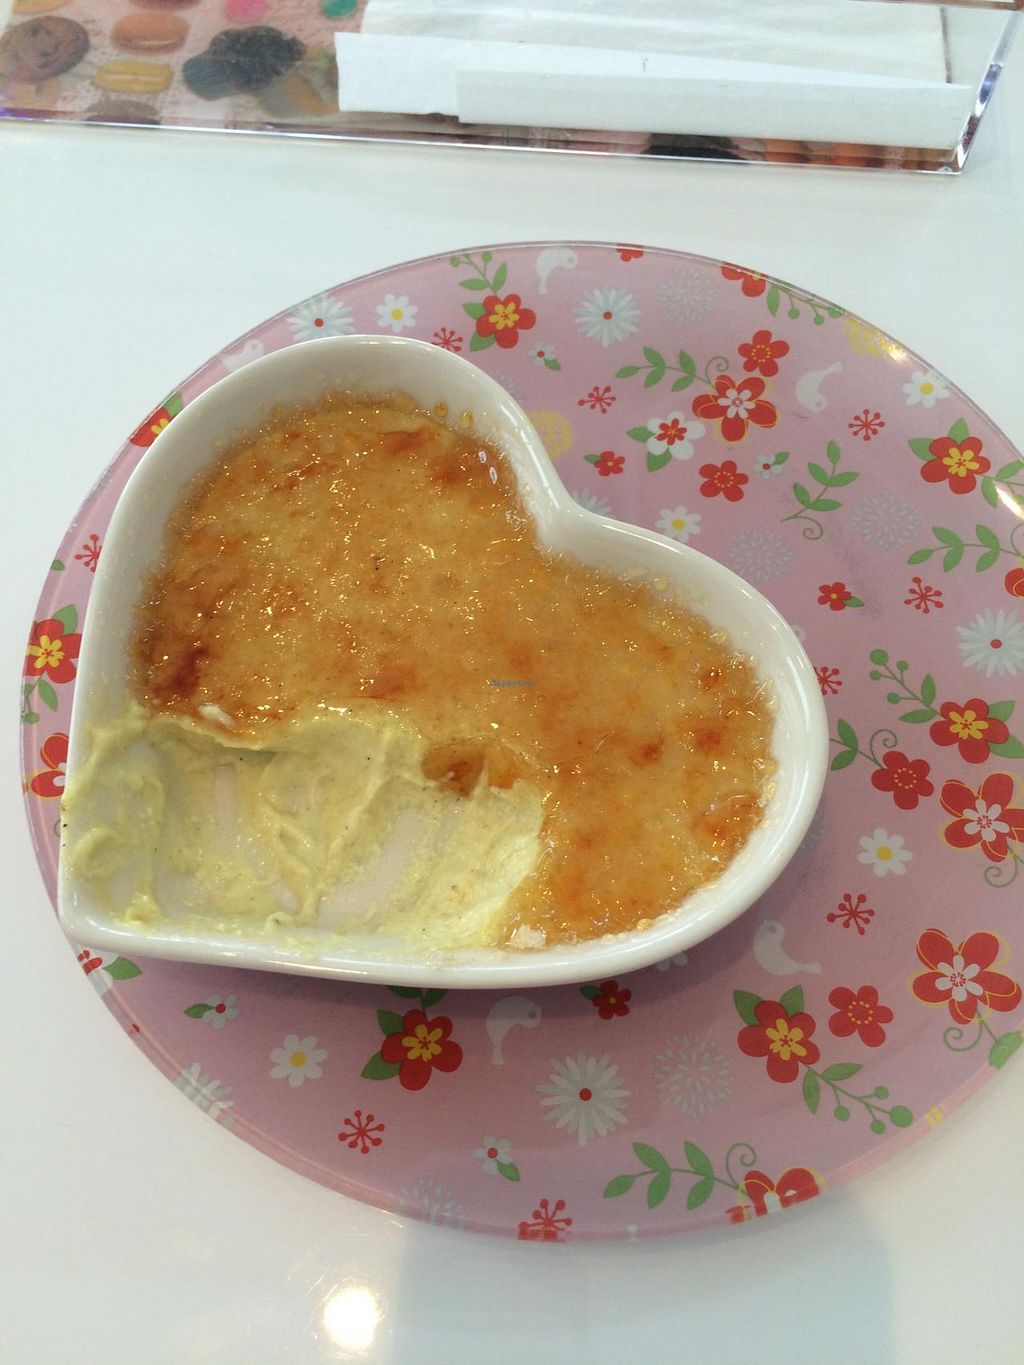 "Photo of CLOSED: Gourmet Neko Cafe  by <a href=""/members/profile/thepianowindow"">thepianowindow</a> <br/>Creme brulee at グルメ猫カフェ <br/> July 4, 2015  - <a href='/contact/abuse/image/59840/108174'>Report</a>"